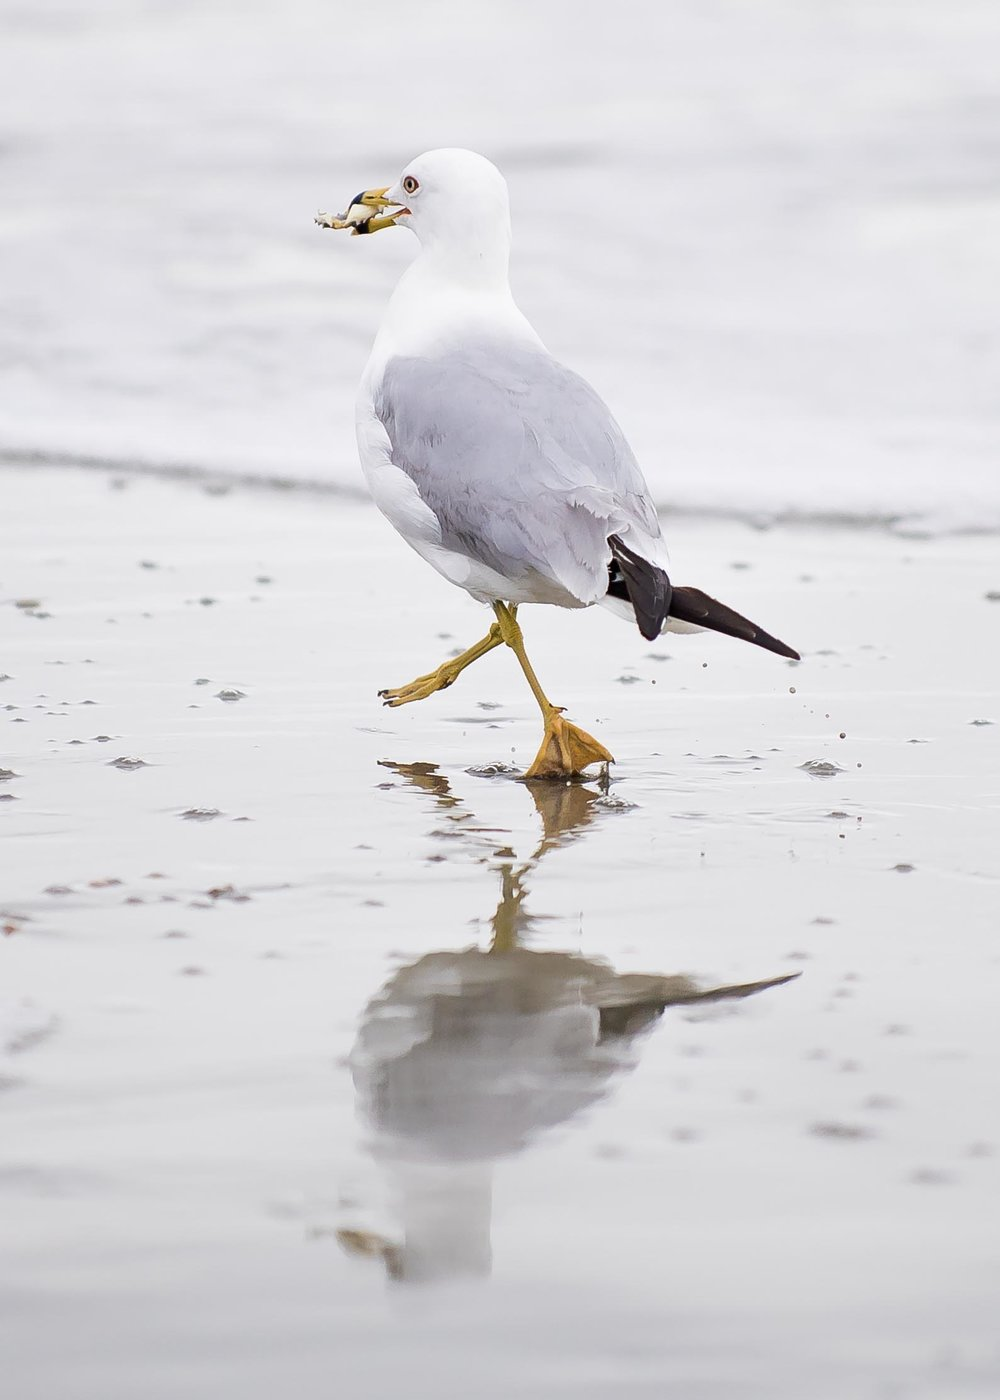 This shot contains a bit of gesture with the ring-billed gull's legs crossed and one foot in the air. It also helps that the bird was carrying a souvenir in it's beak. I shot about 30 similar frames which gave me plenty of options to choose from in finding the best, most 'photographic' image.